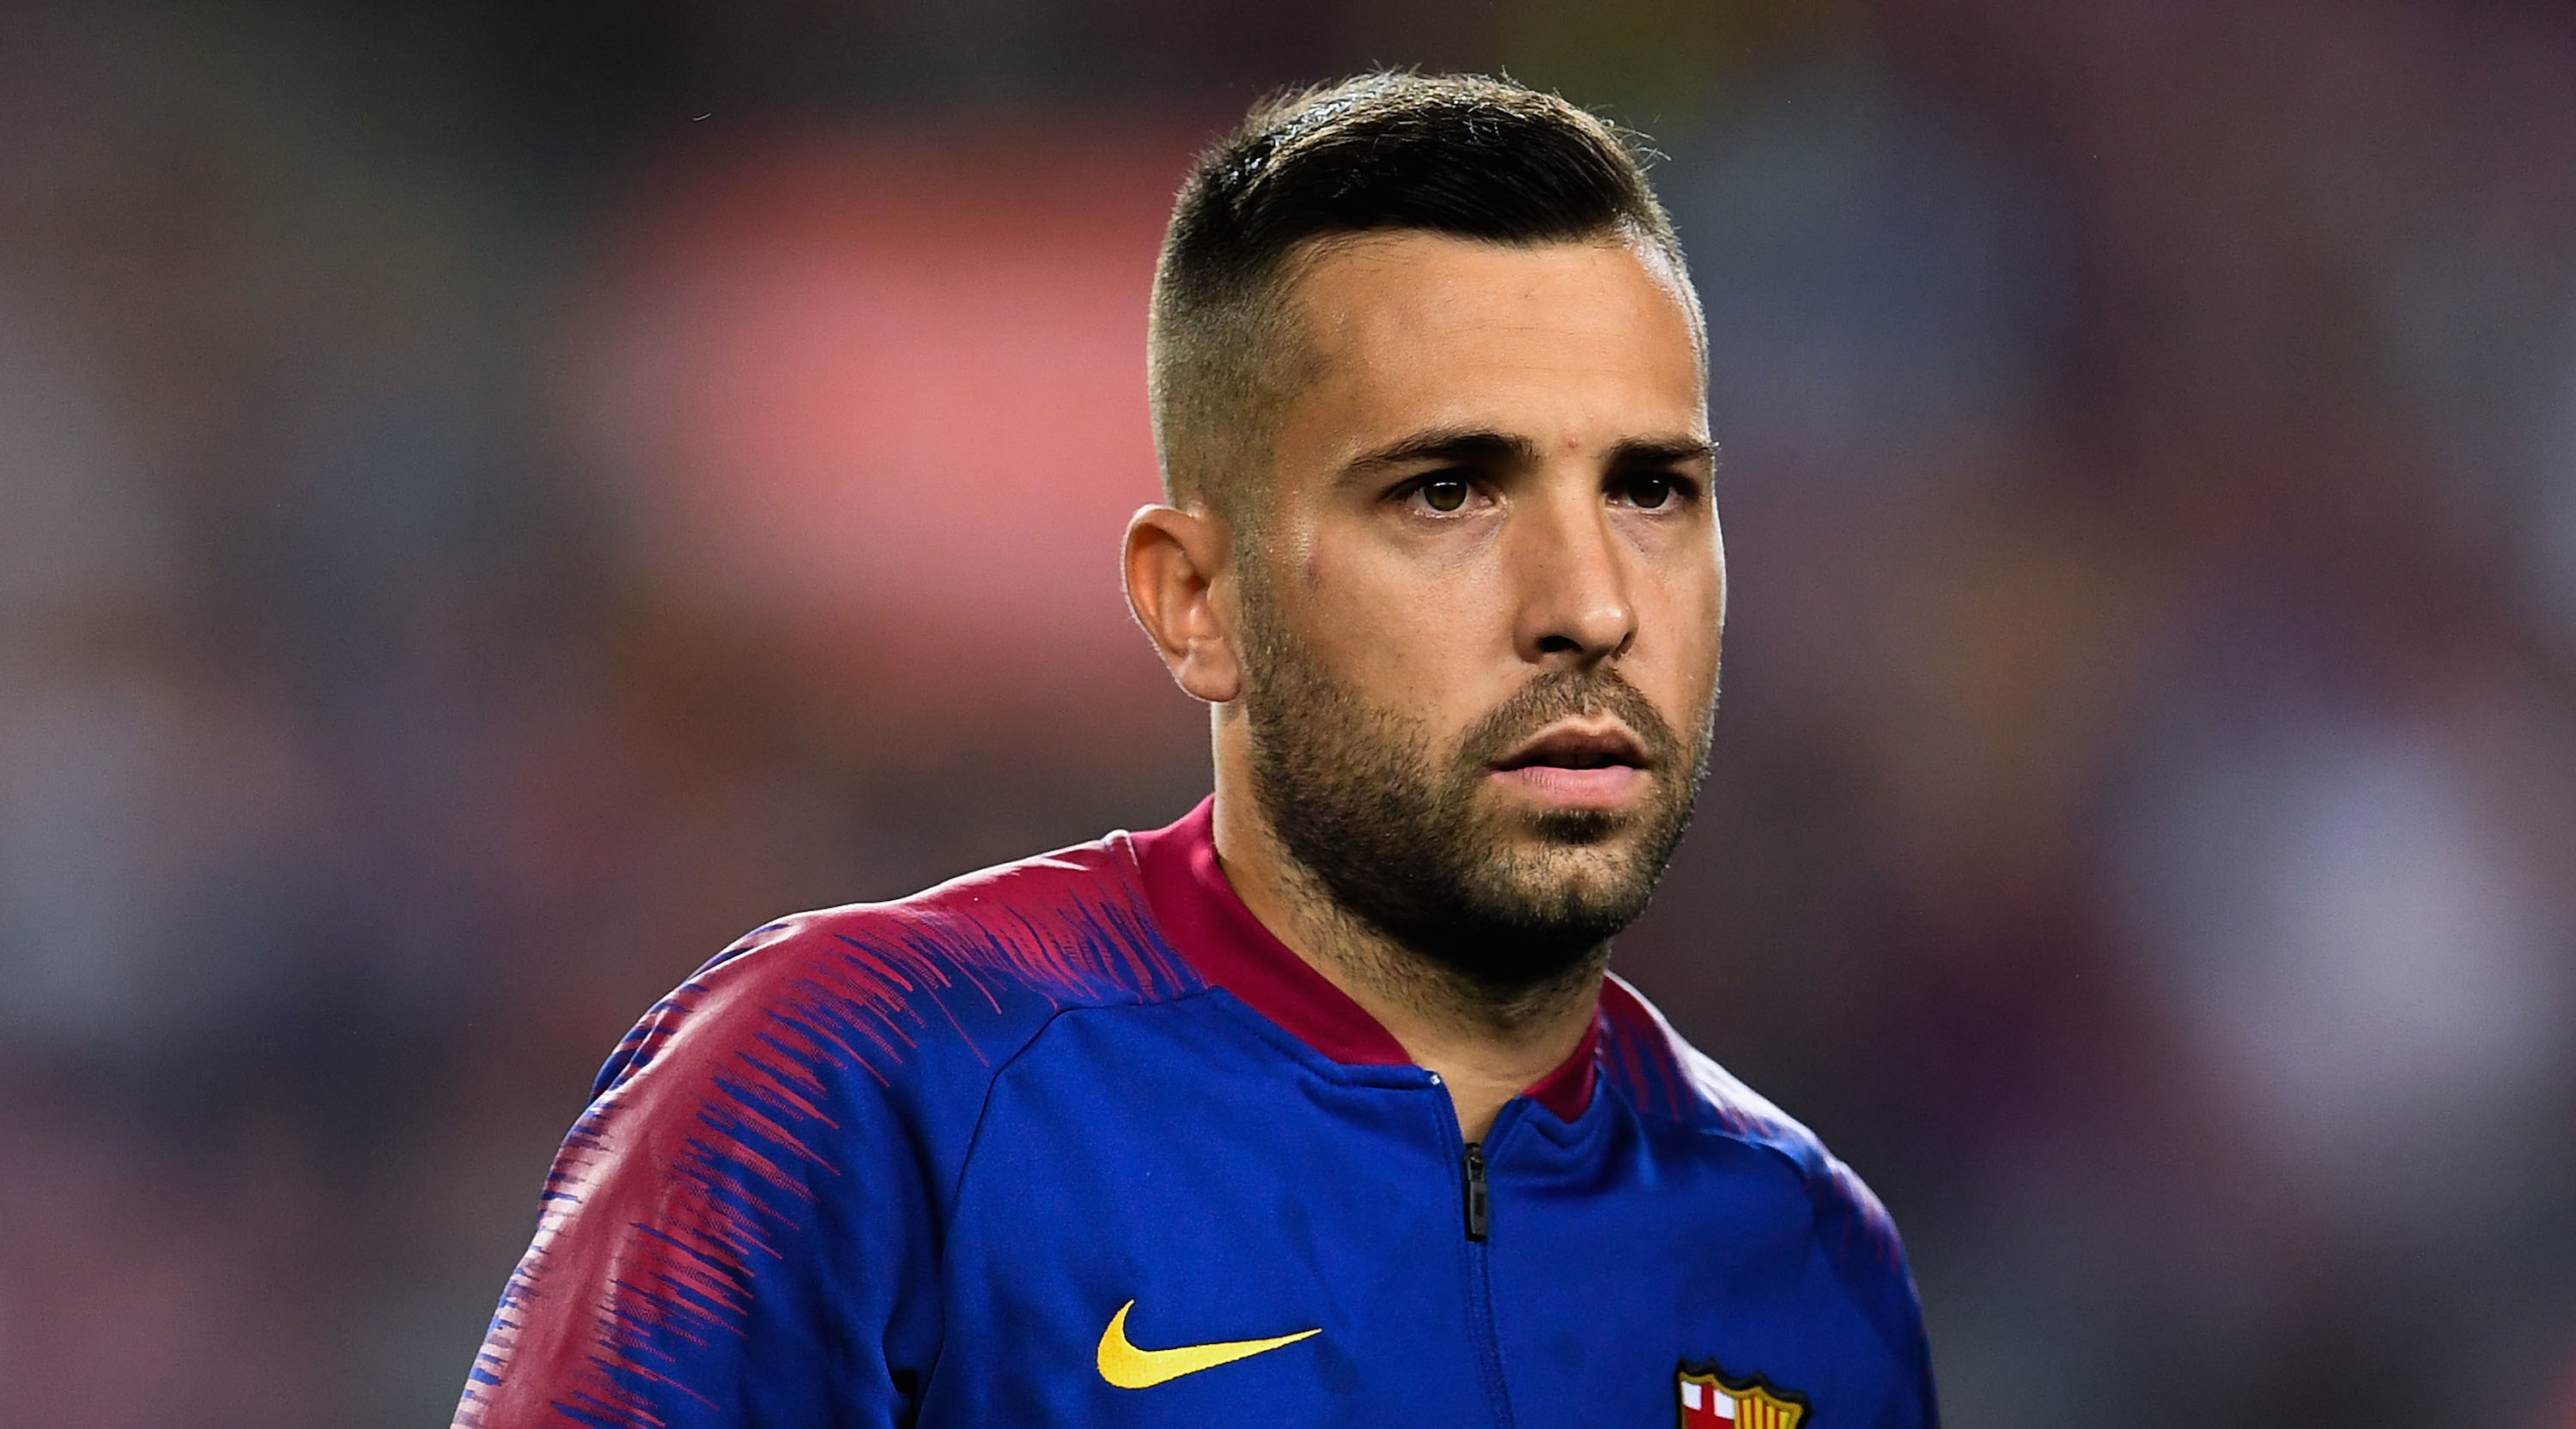 Jordi Alba of FC Barcelona looks on during the La Liga match between FC Barcelona and Deportivo Alaves at Camp Nou on August 18, 2018 in Barcelona, Spain. (Photo by David Ramos/Getty Images)